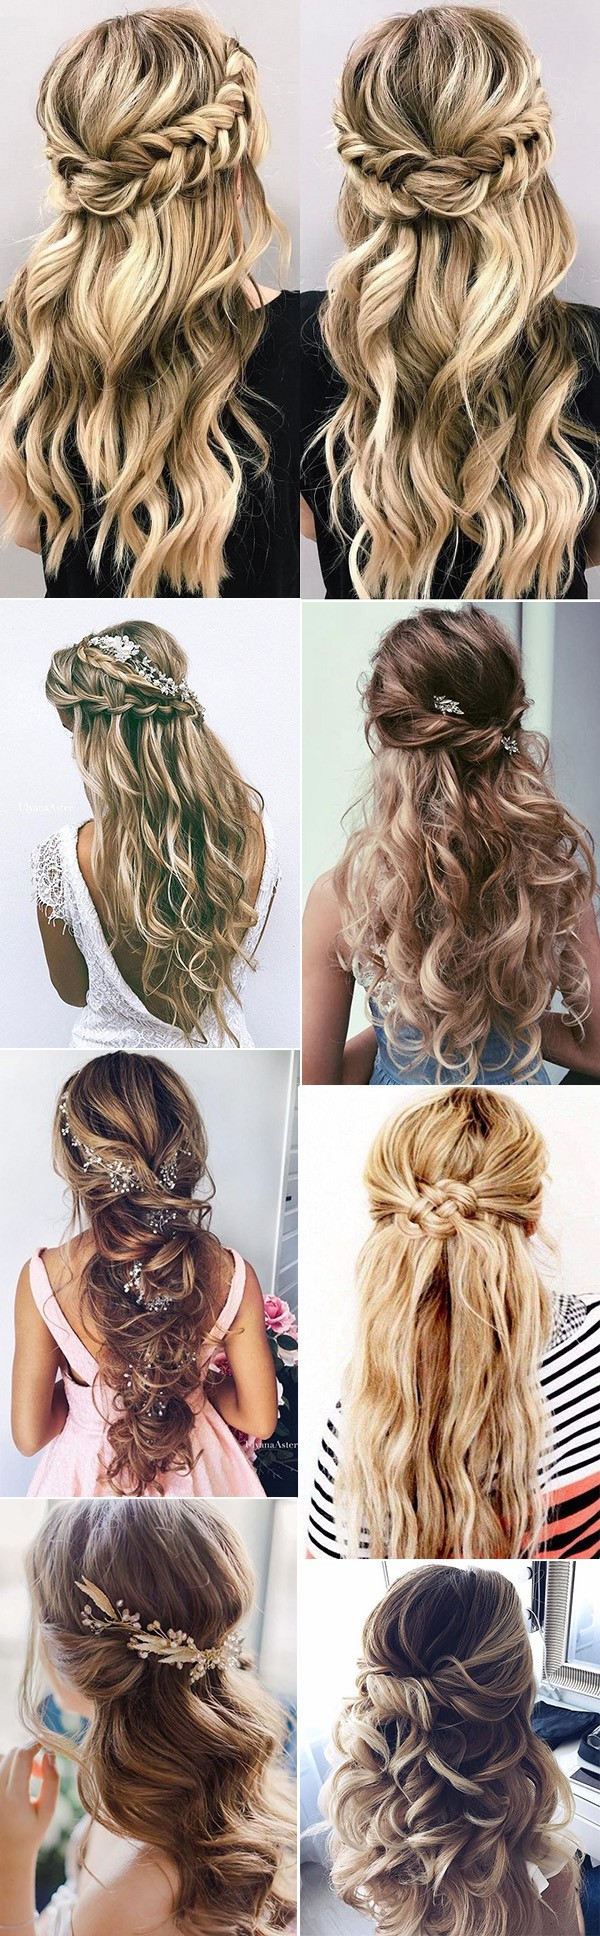 chic half up half down wedding hairstyles ideas